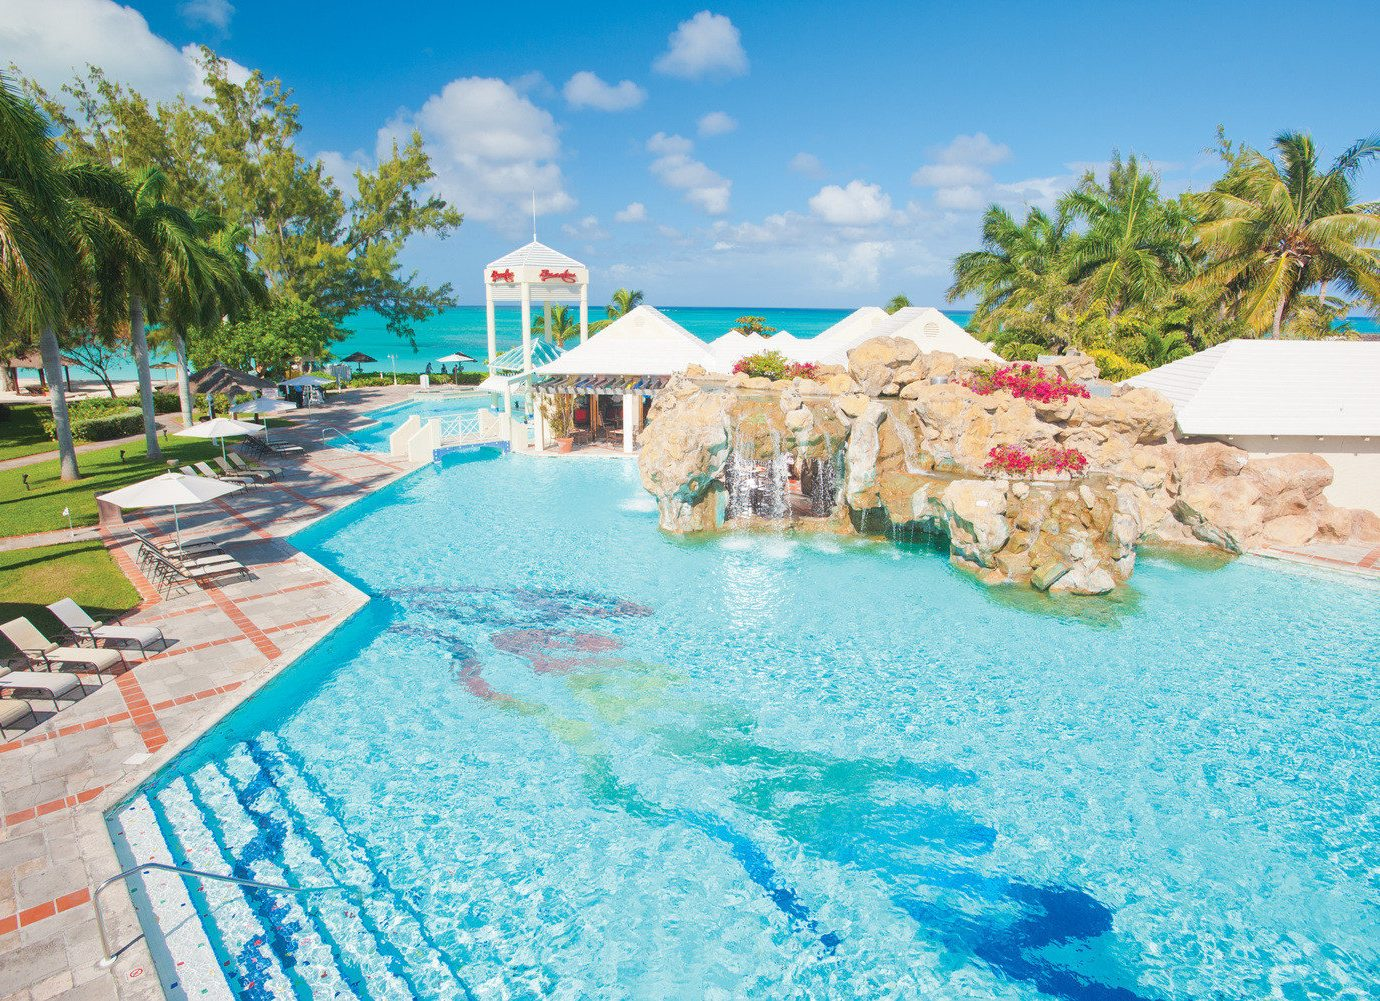 10 Best AllInclusive Resorts in the Caribbean for